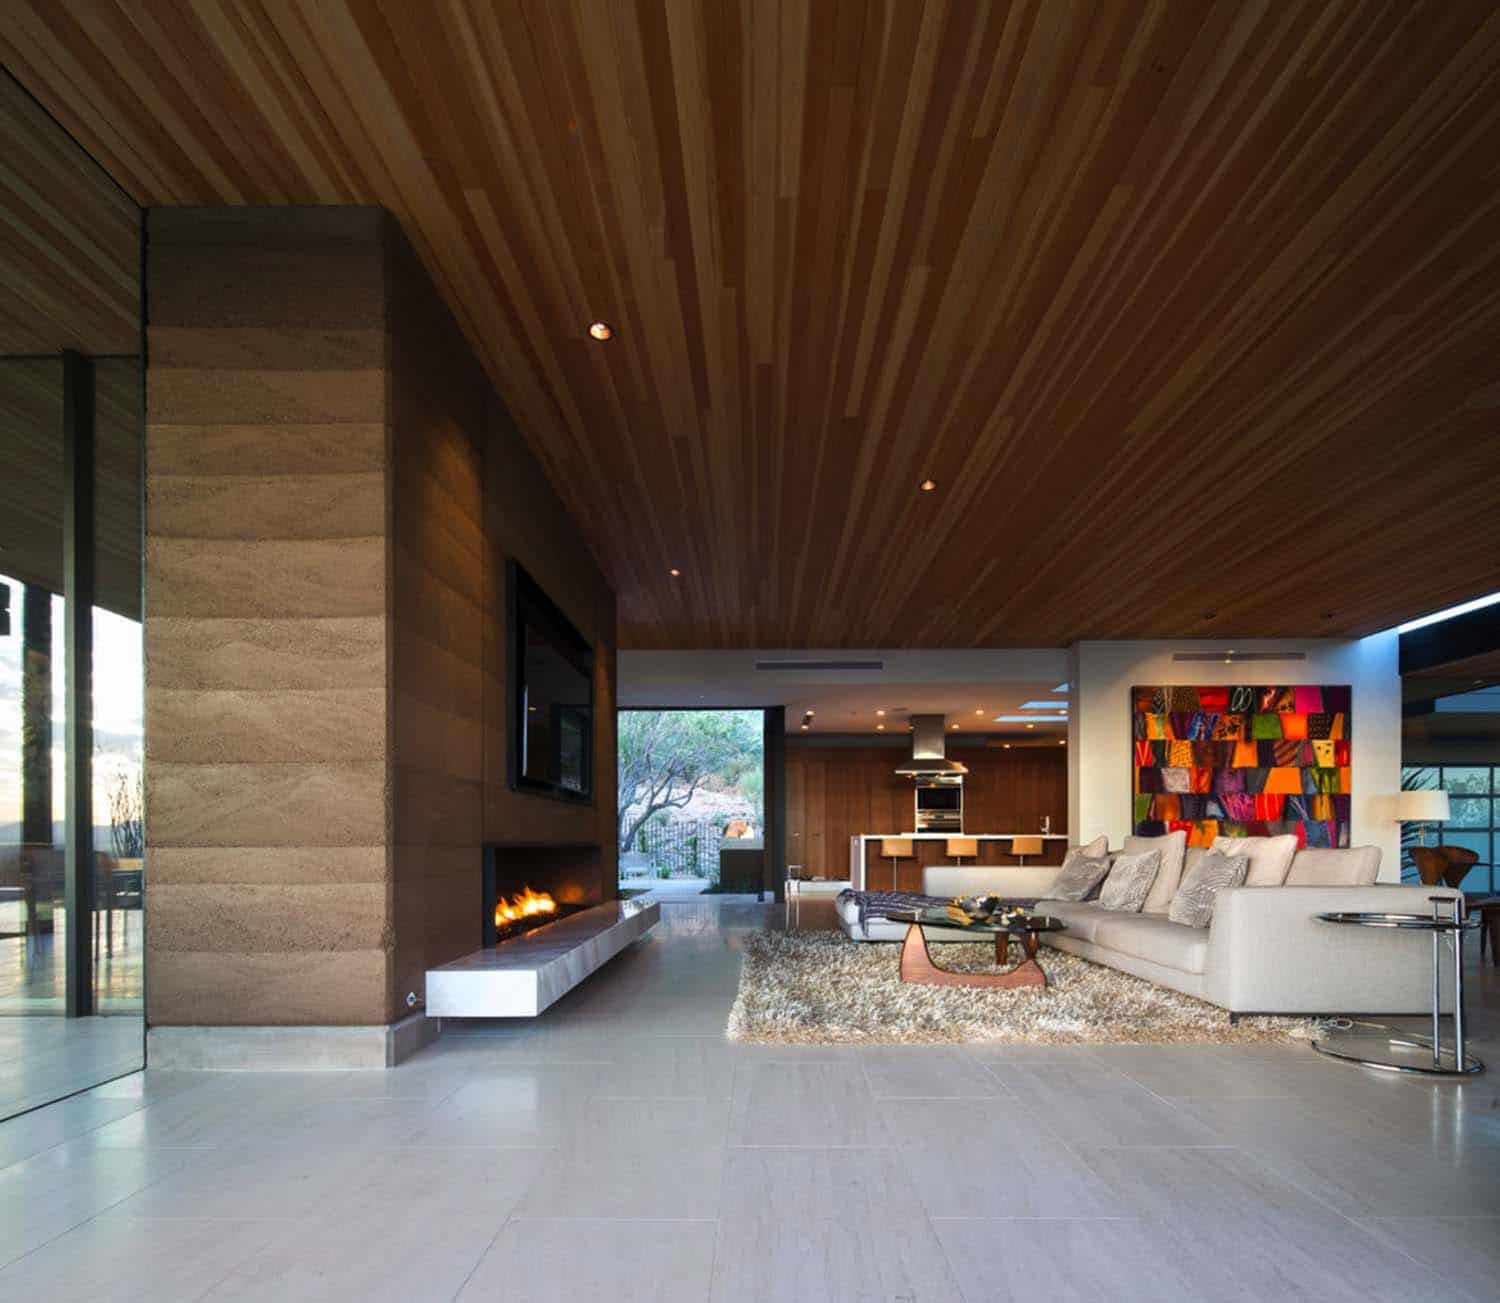 Modern Rammed Earth Home-Kendle Design-12-1 Kindesign